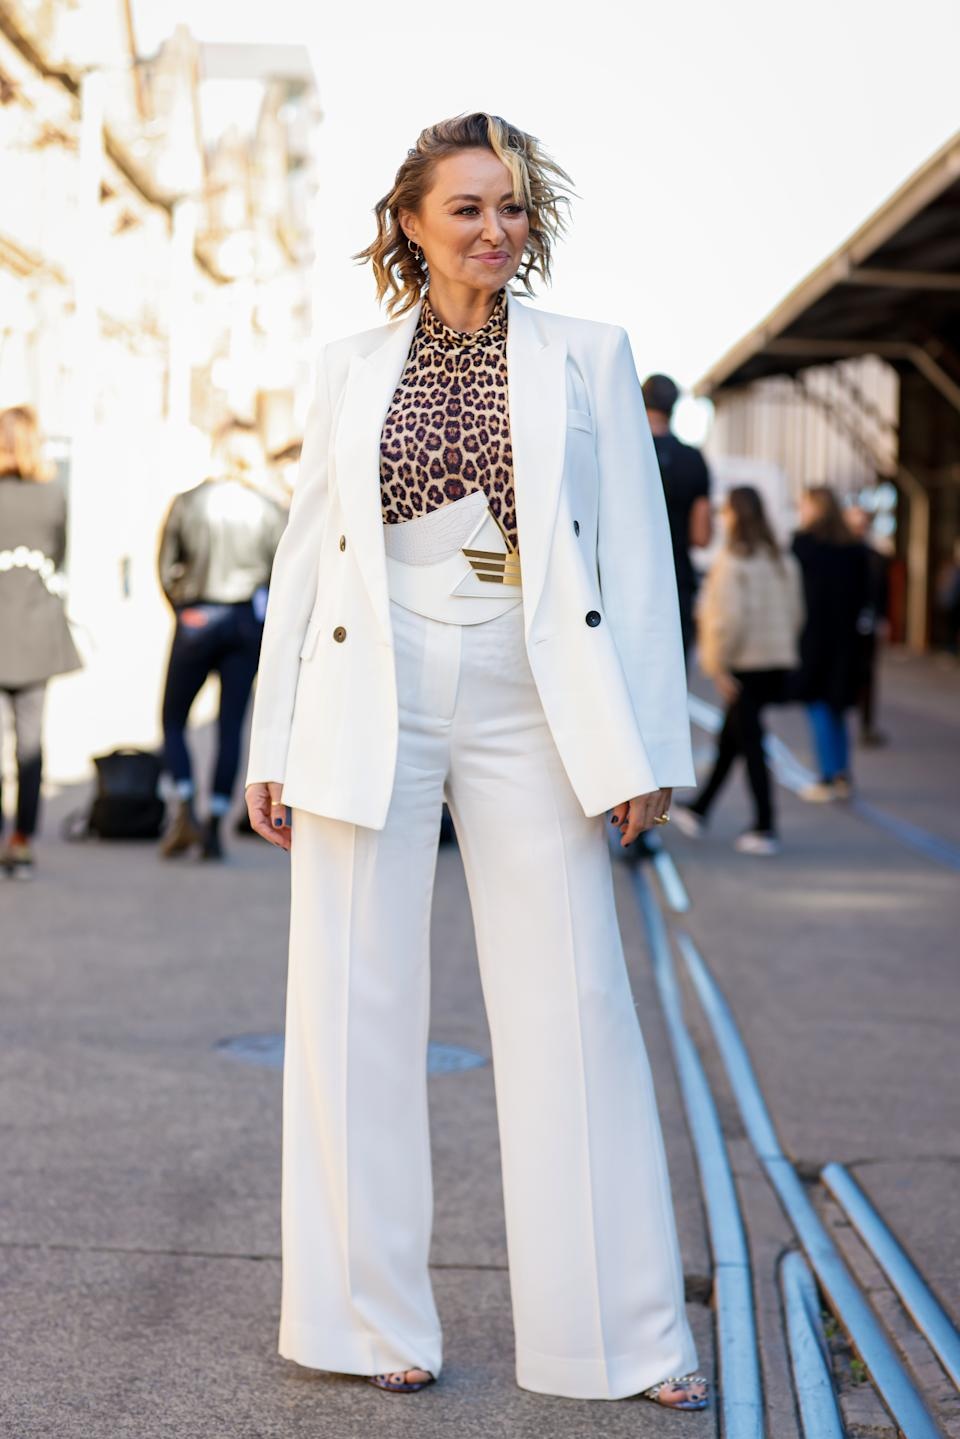 Designer Camilla Franks wearing a white suit, leopard print top and gold belt at Afterpay Australian Fashion Week 2021 on May 31, 2021 in Sydney, Australia.